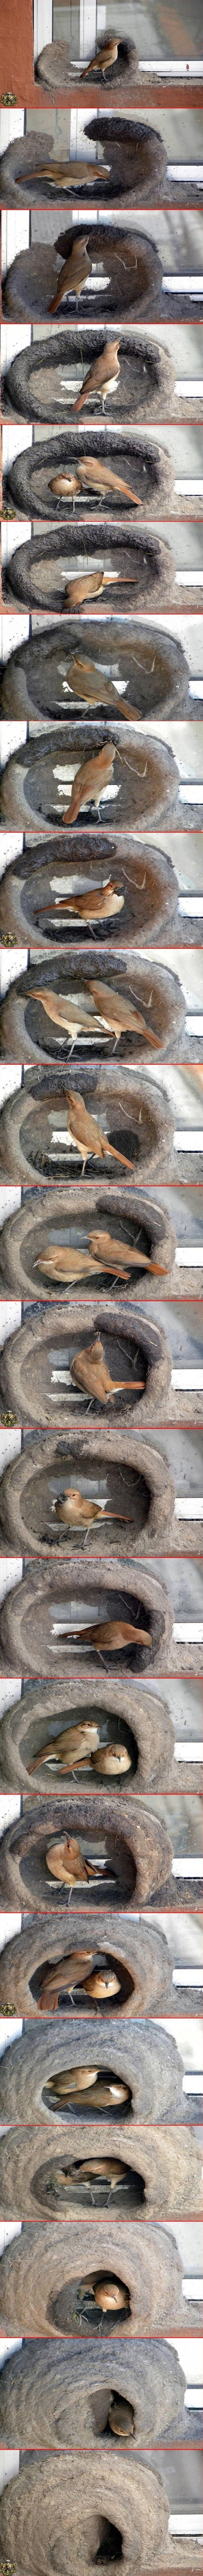 the oven bird meaning